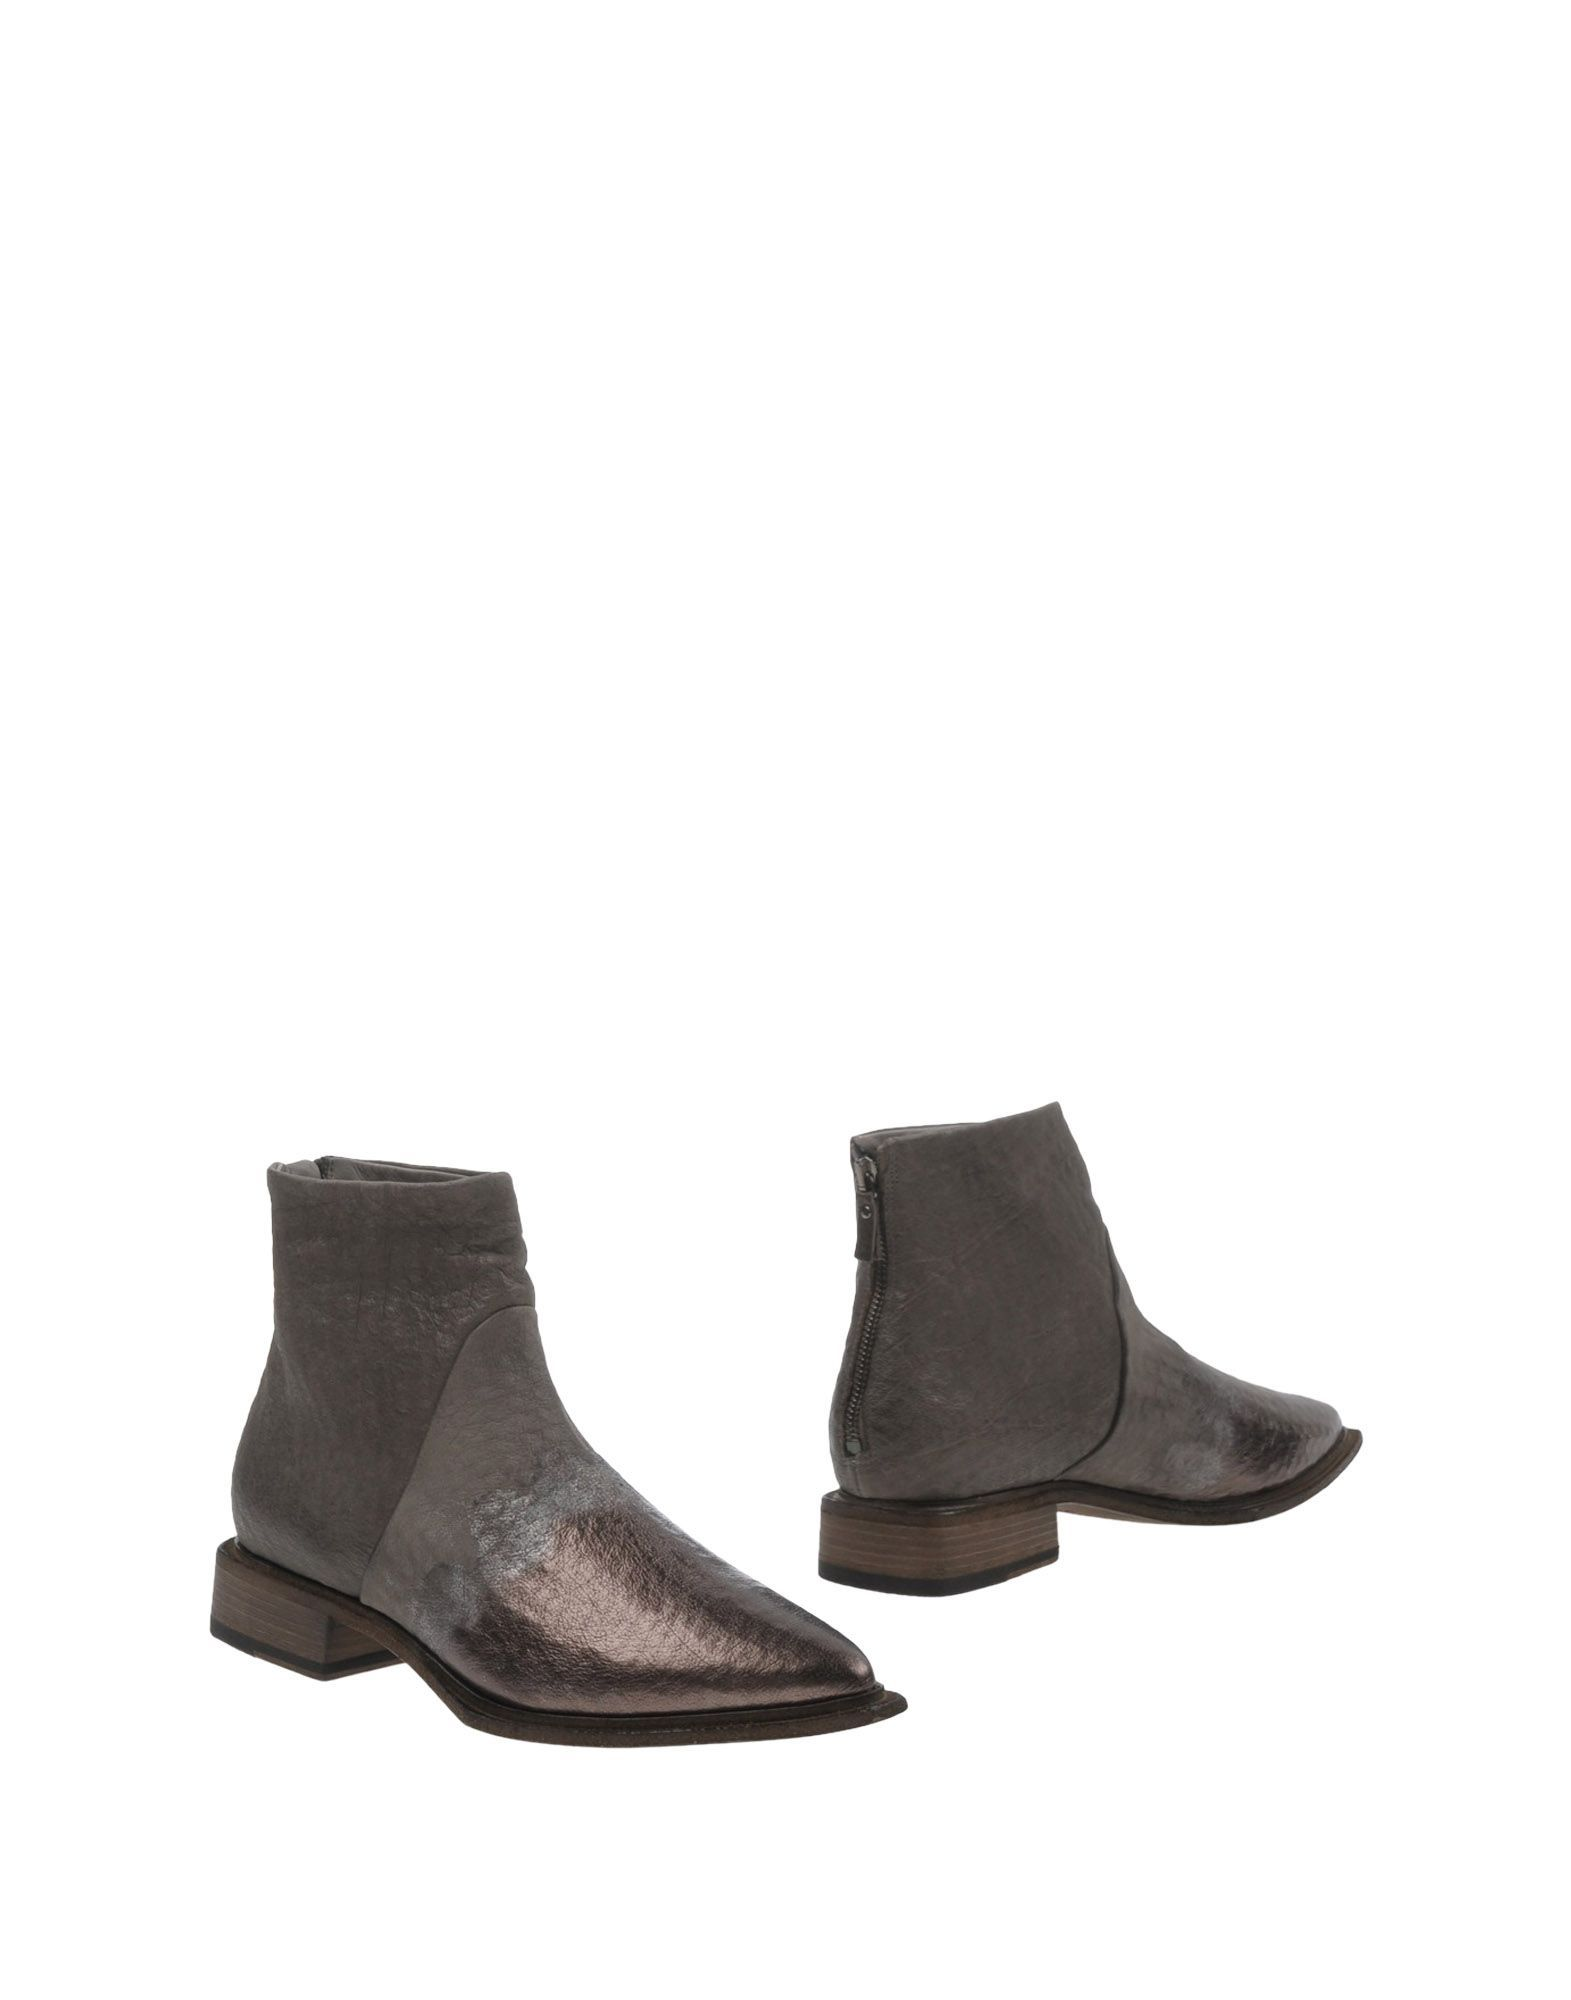 FOOTWEAR - Ankle boots Vic Mati Sale Cheap Online Discount How Much AsQ5E8